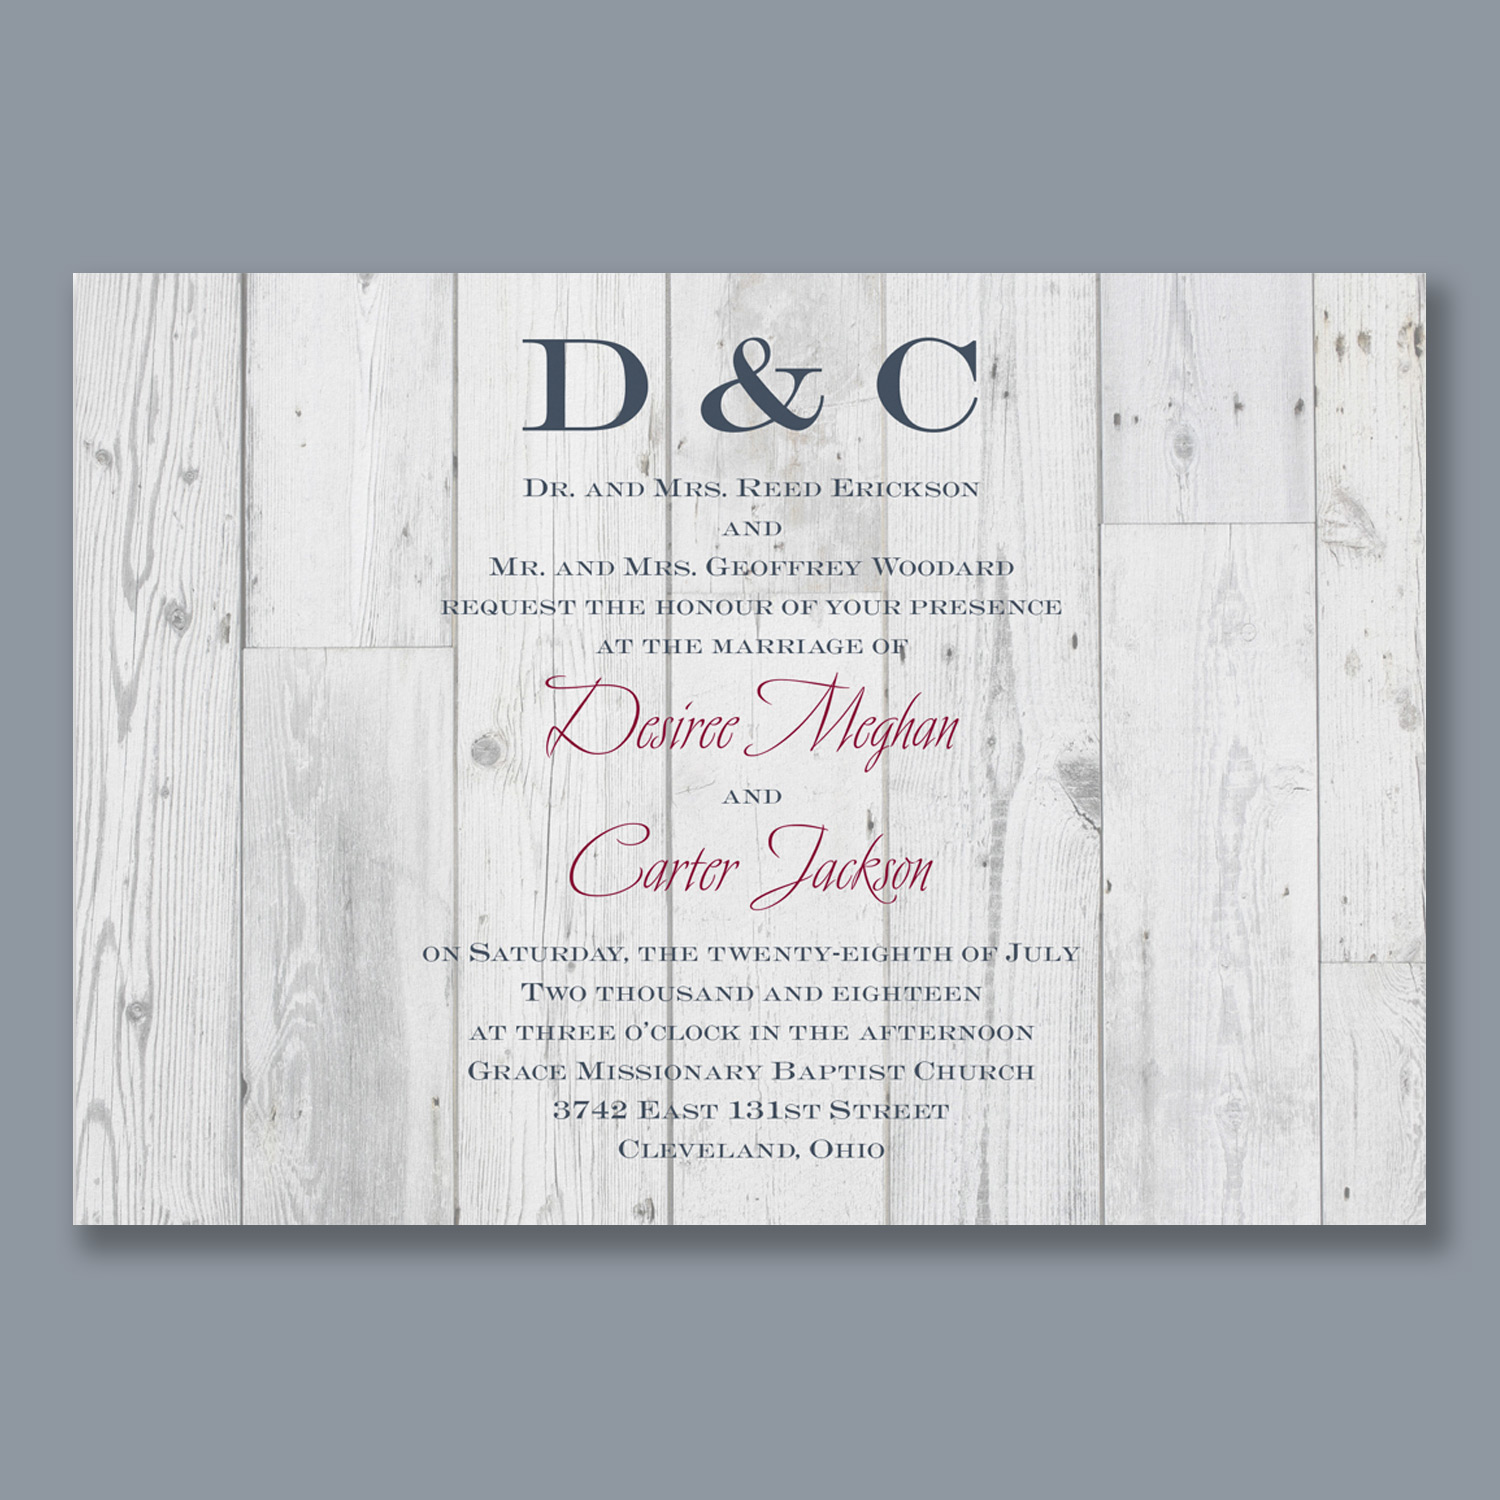 Wedding invitations inkcorporated designs sun bleached monicamarmolfo Image collections